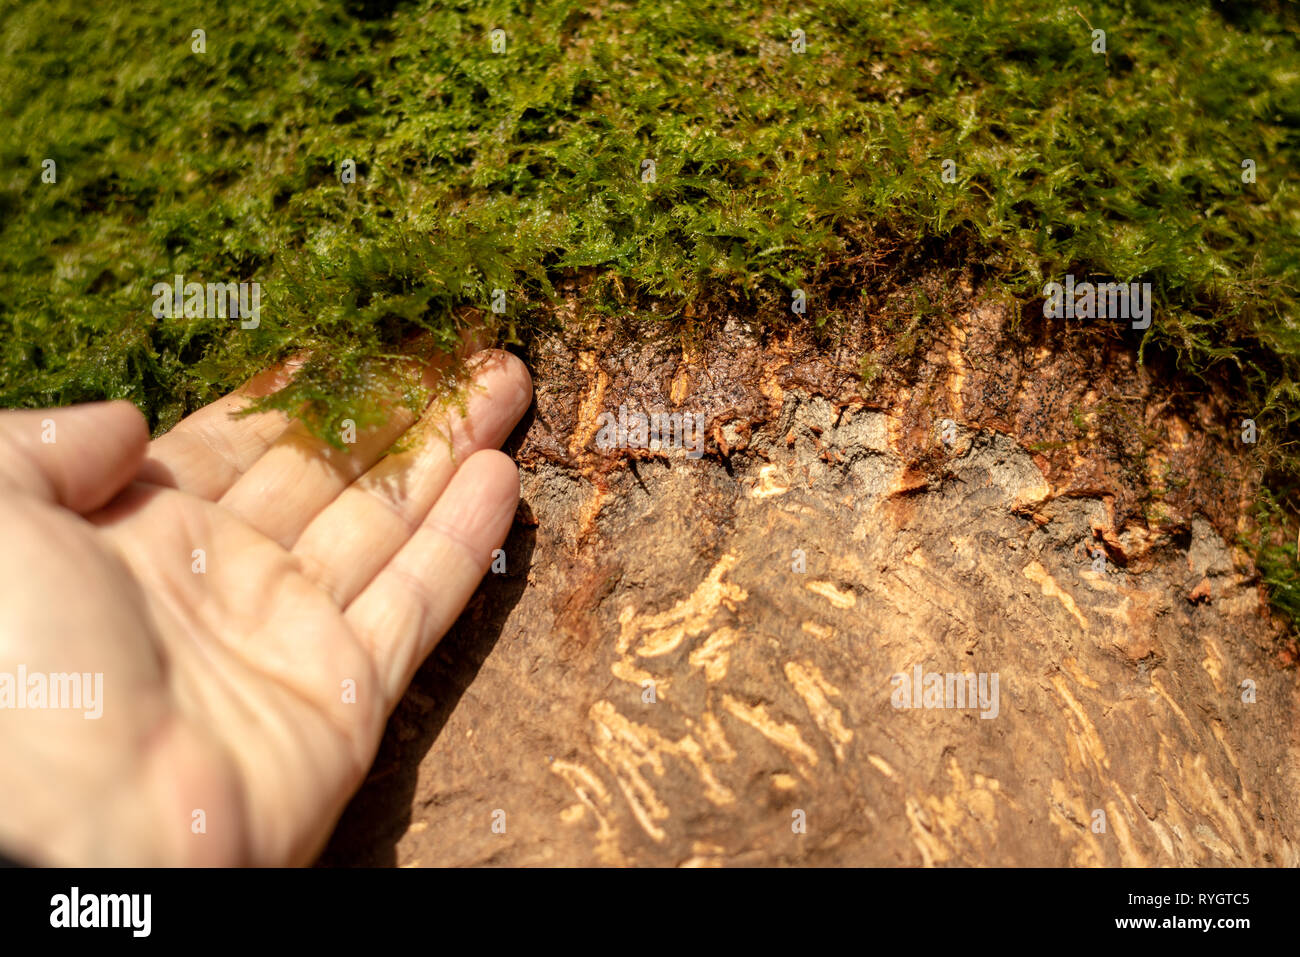 Man's hand and moss on tree. Damaged stripped scraped tree bark by deer. Deer damaged tree trunk. - Stock Image